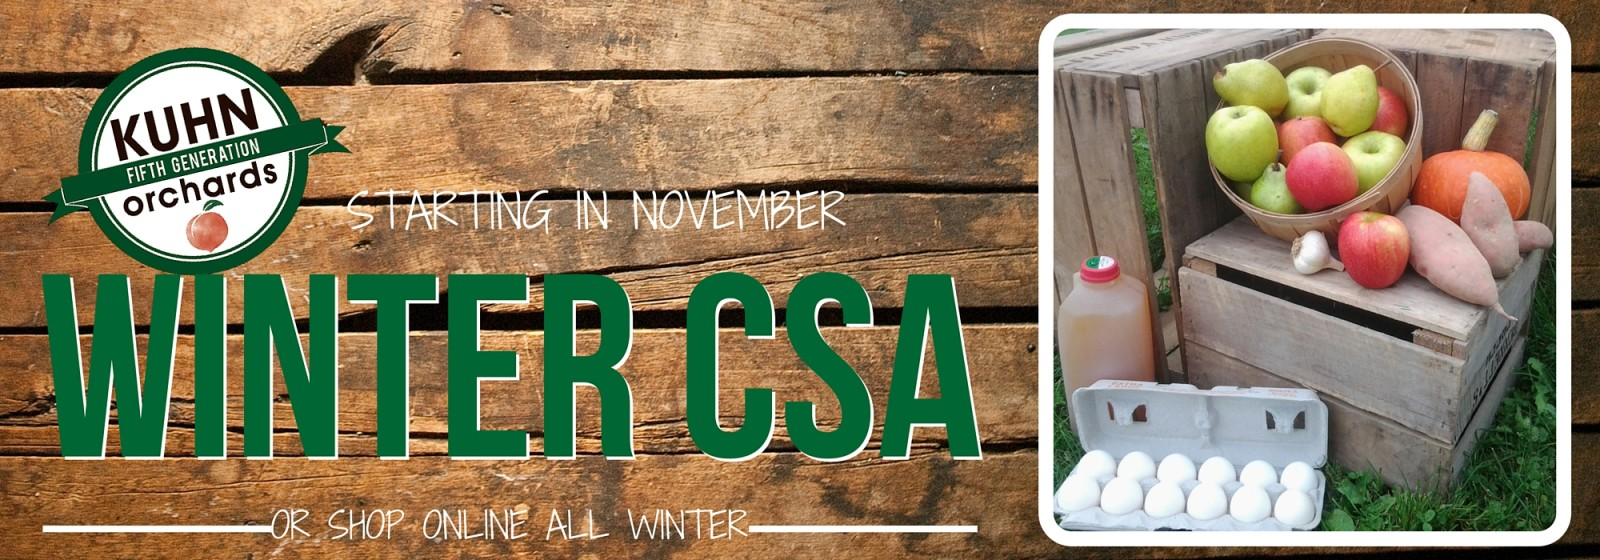 Winter CSA website